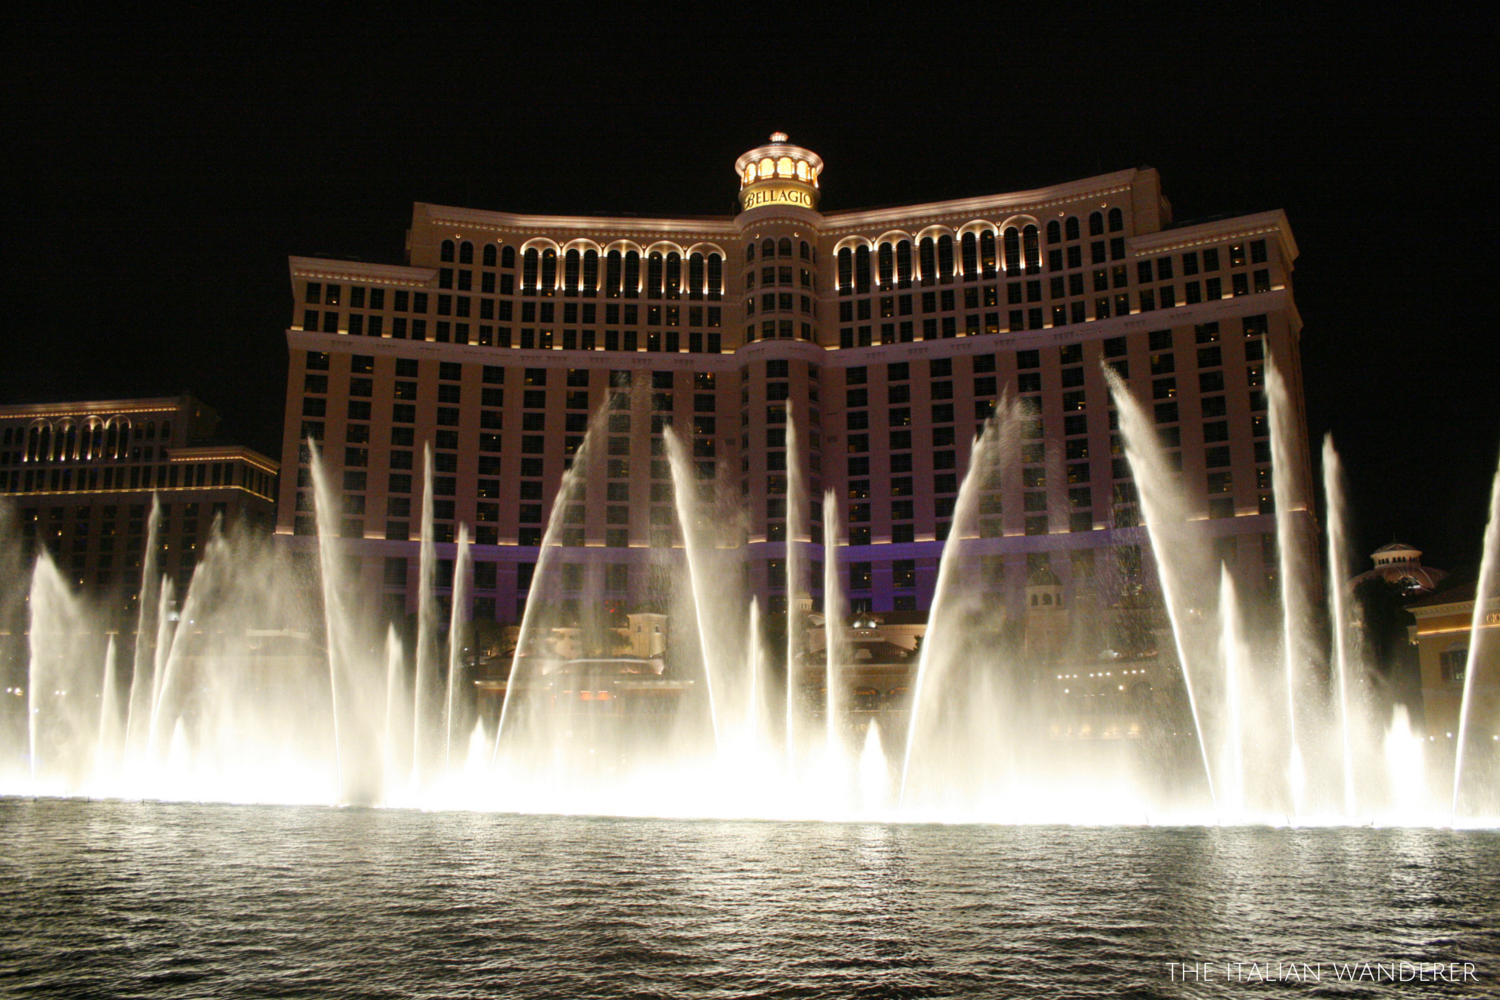 Bellagio's stunning Fountains show